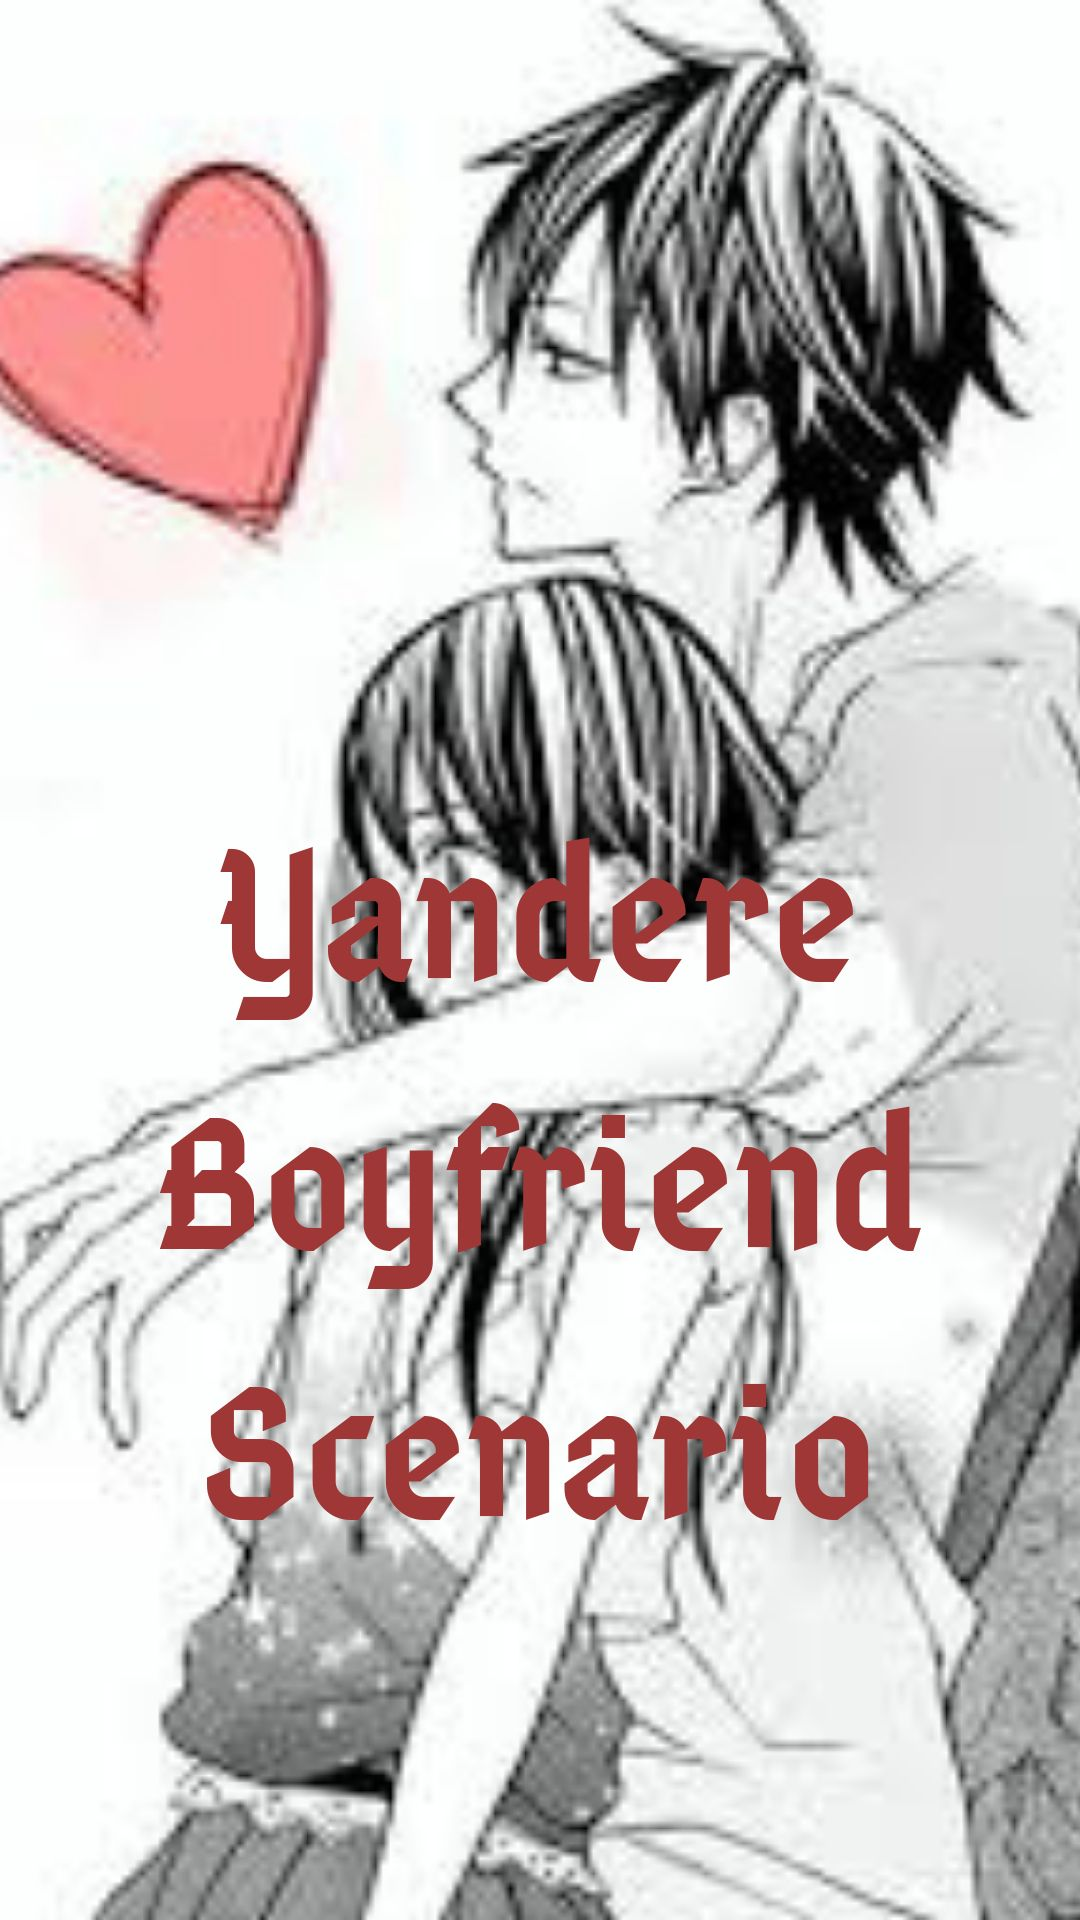 Yandere Boyfriend Scenarios - You wear something of his